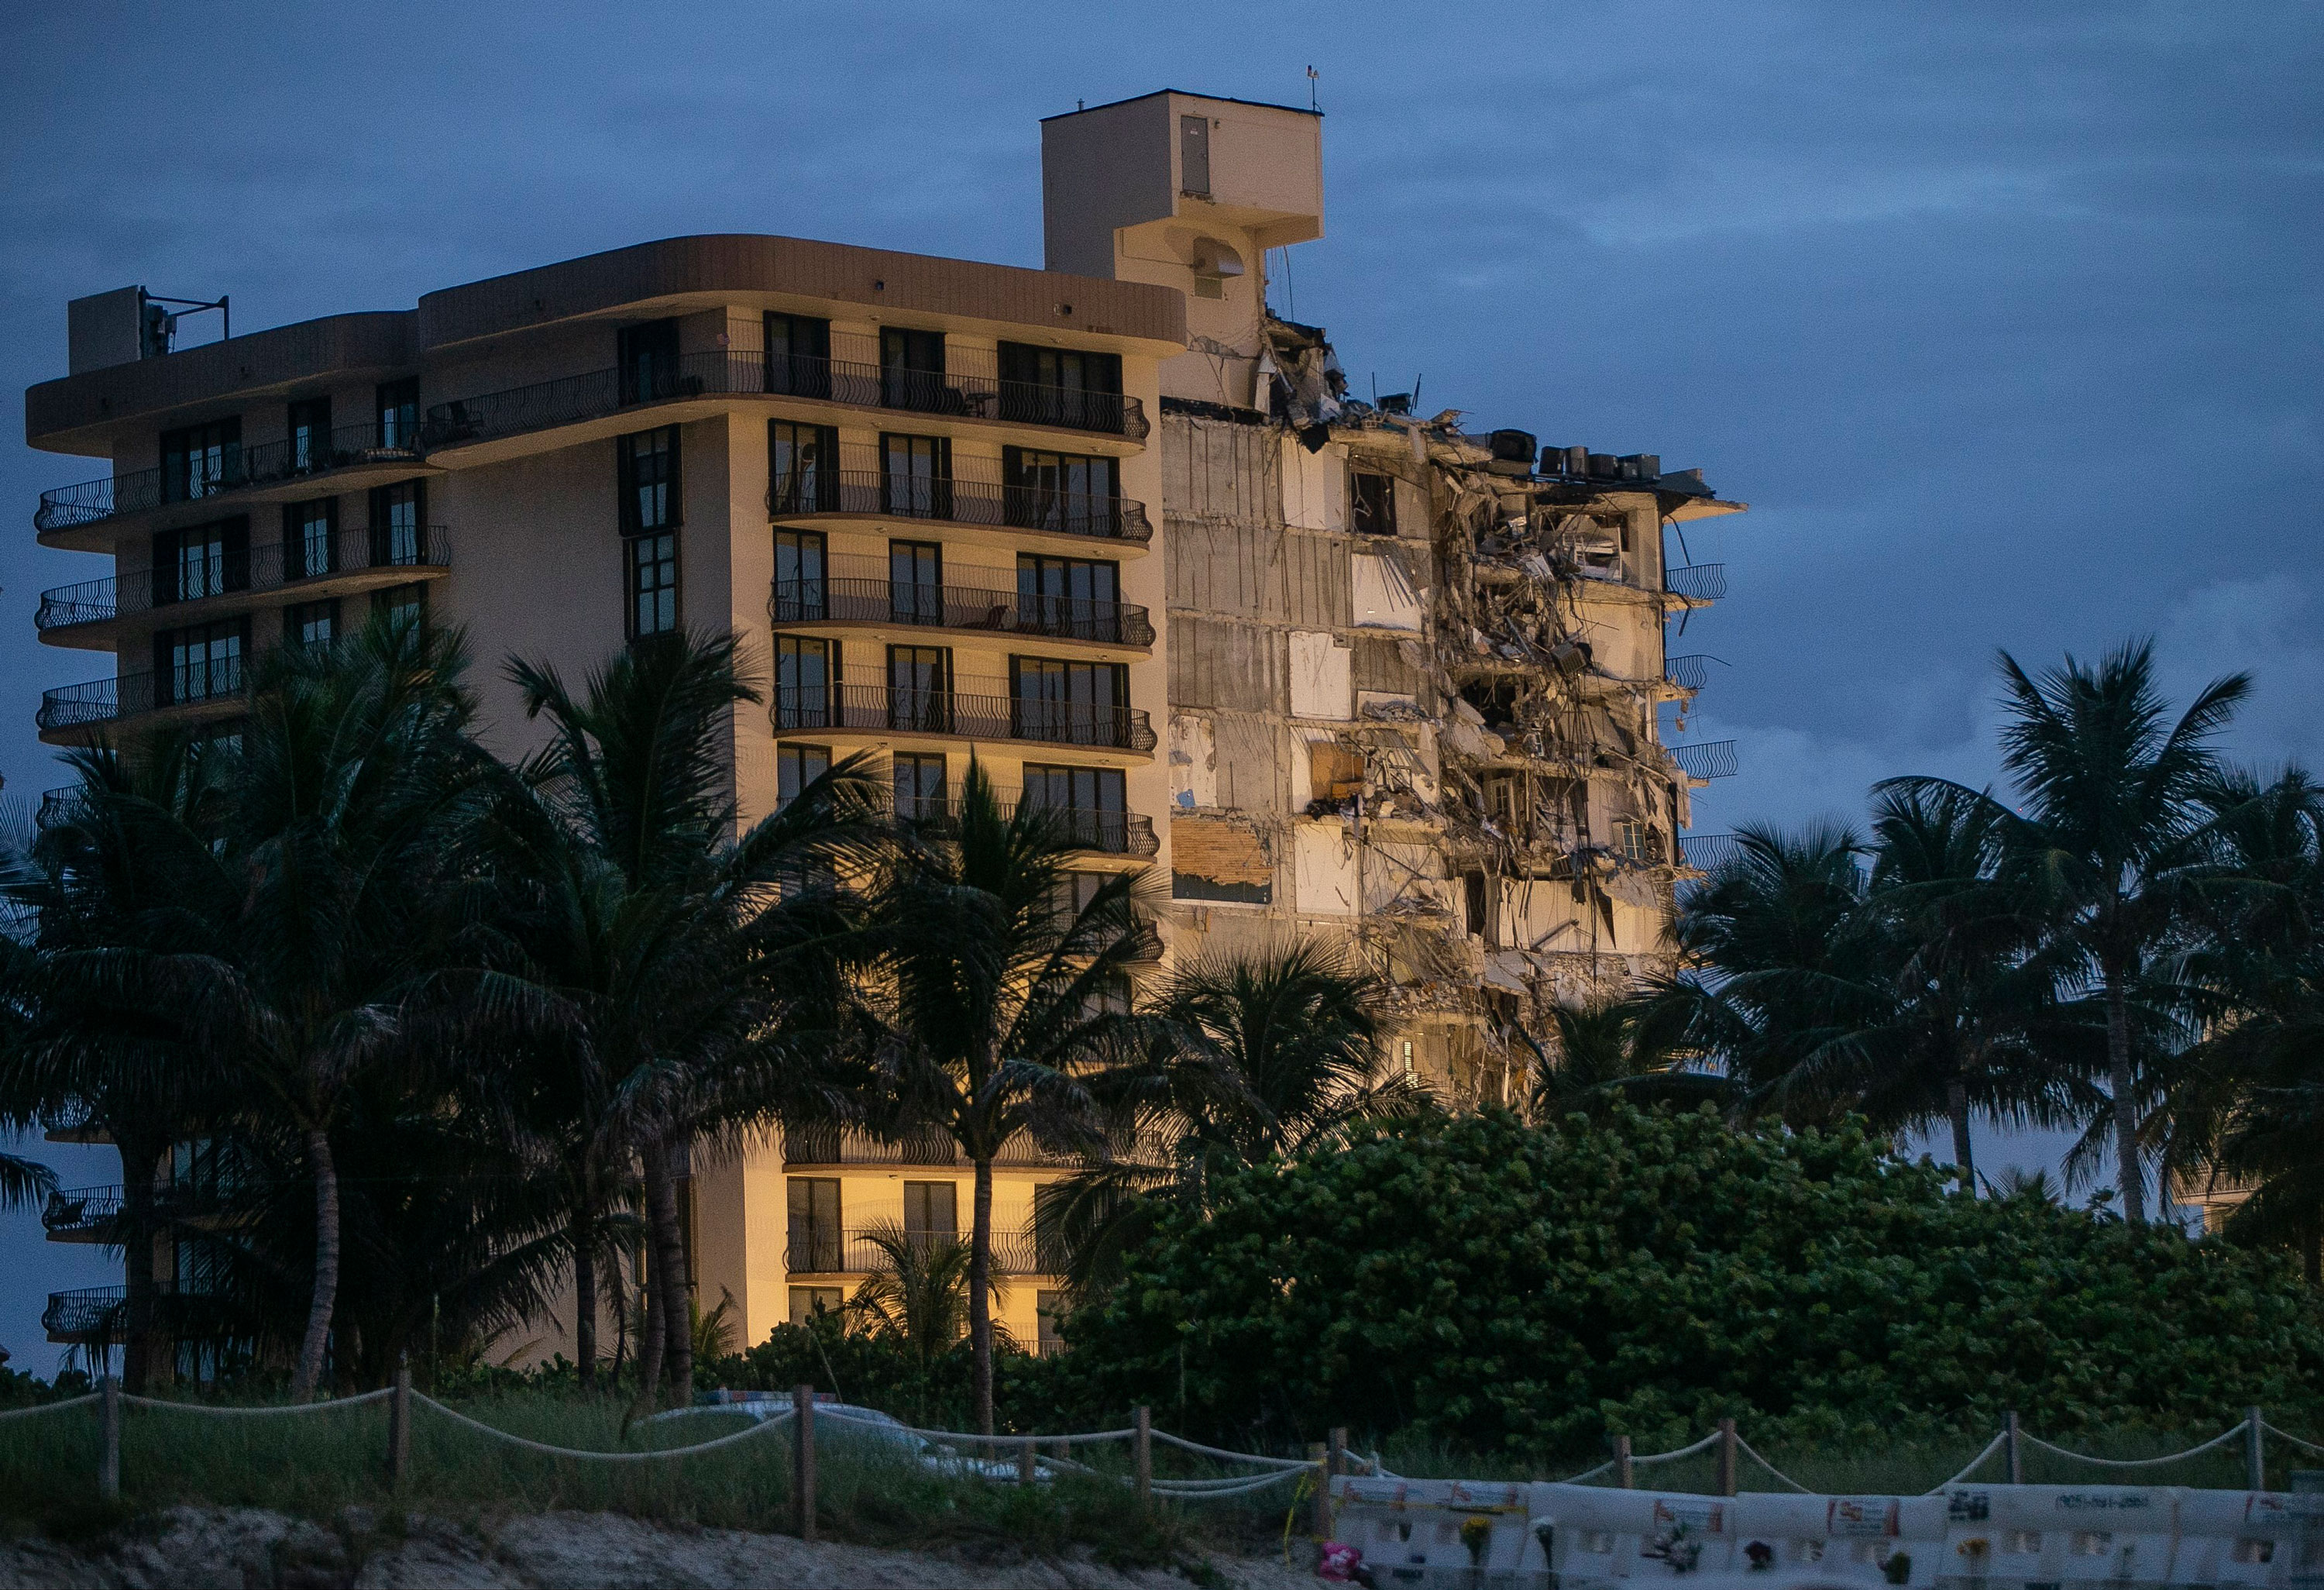 Officials shaping plans to demolish still standing structure at Surfside collapse site, mayor says